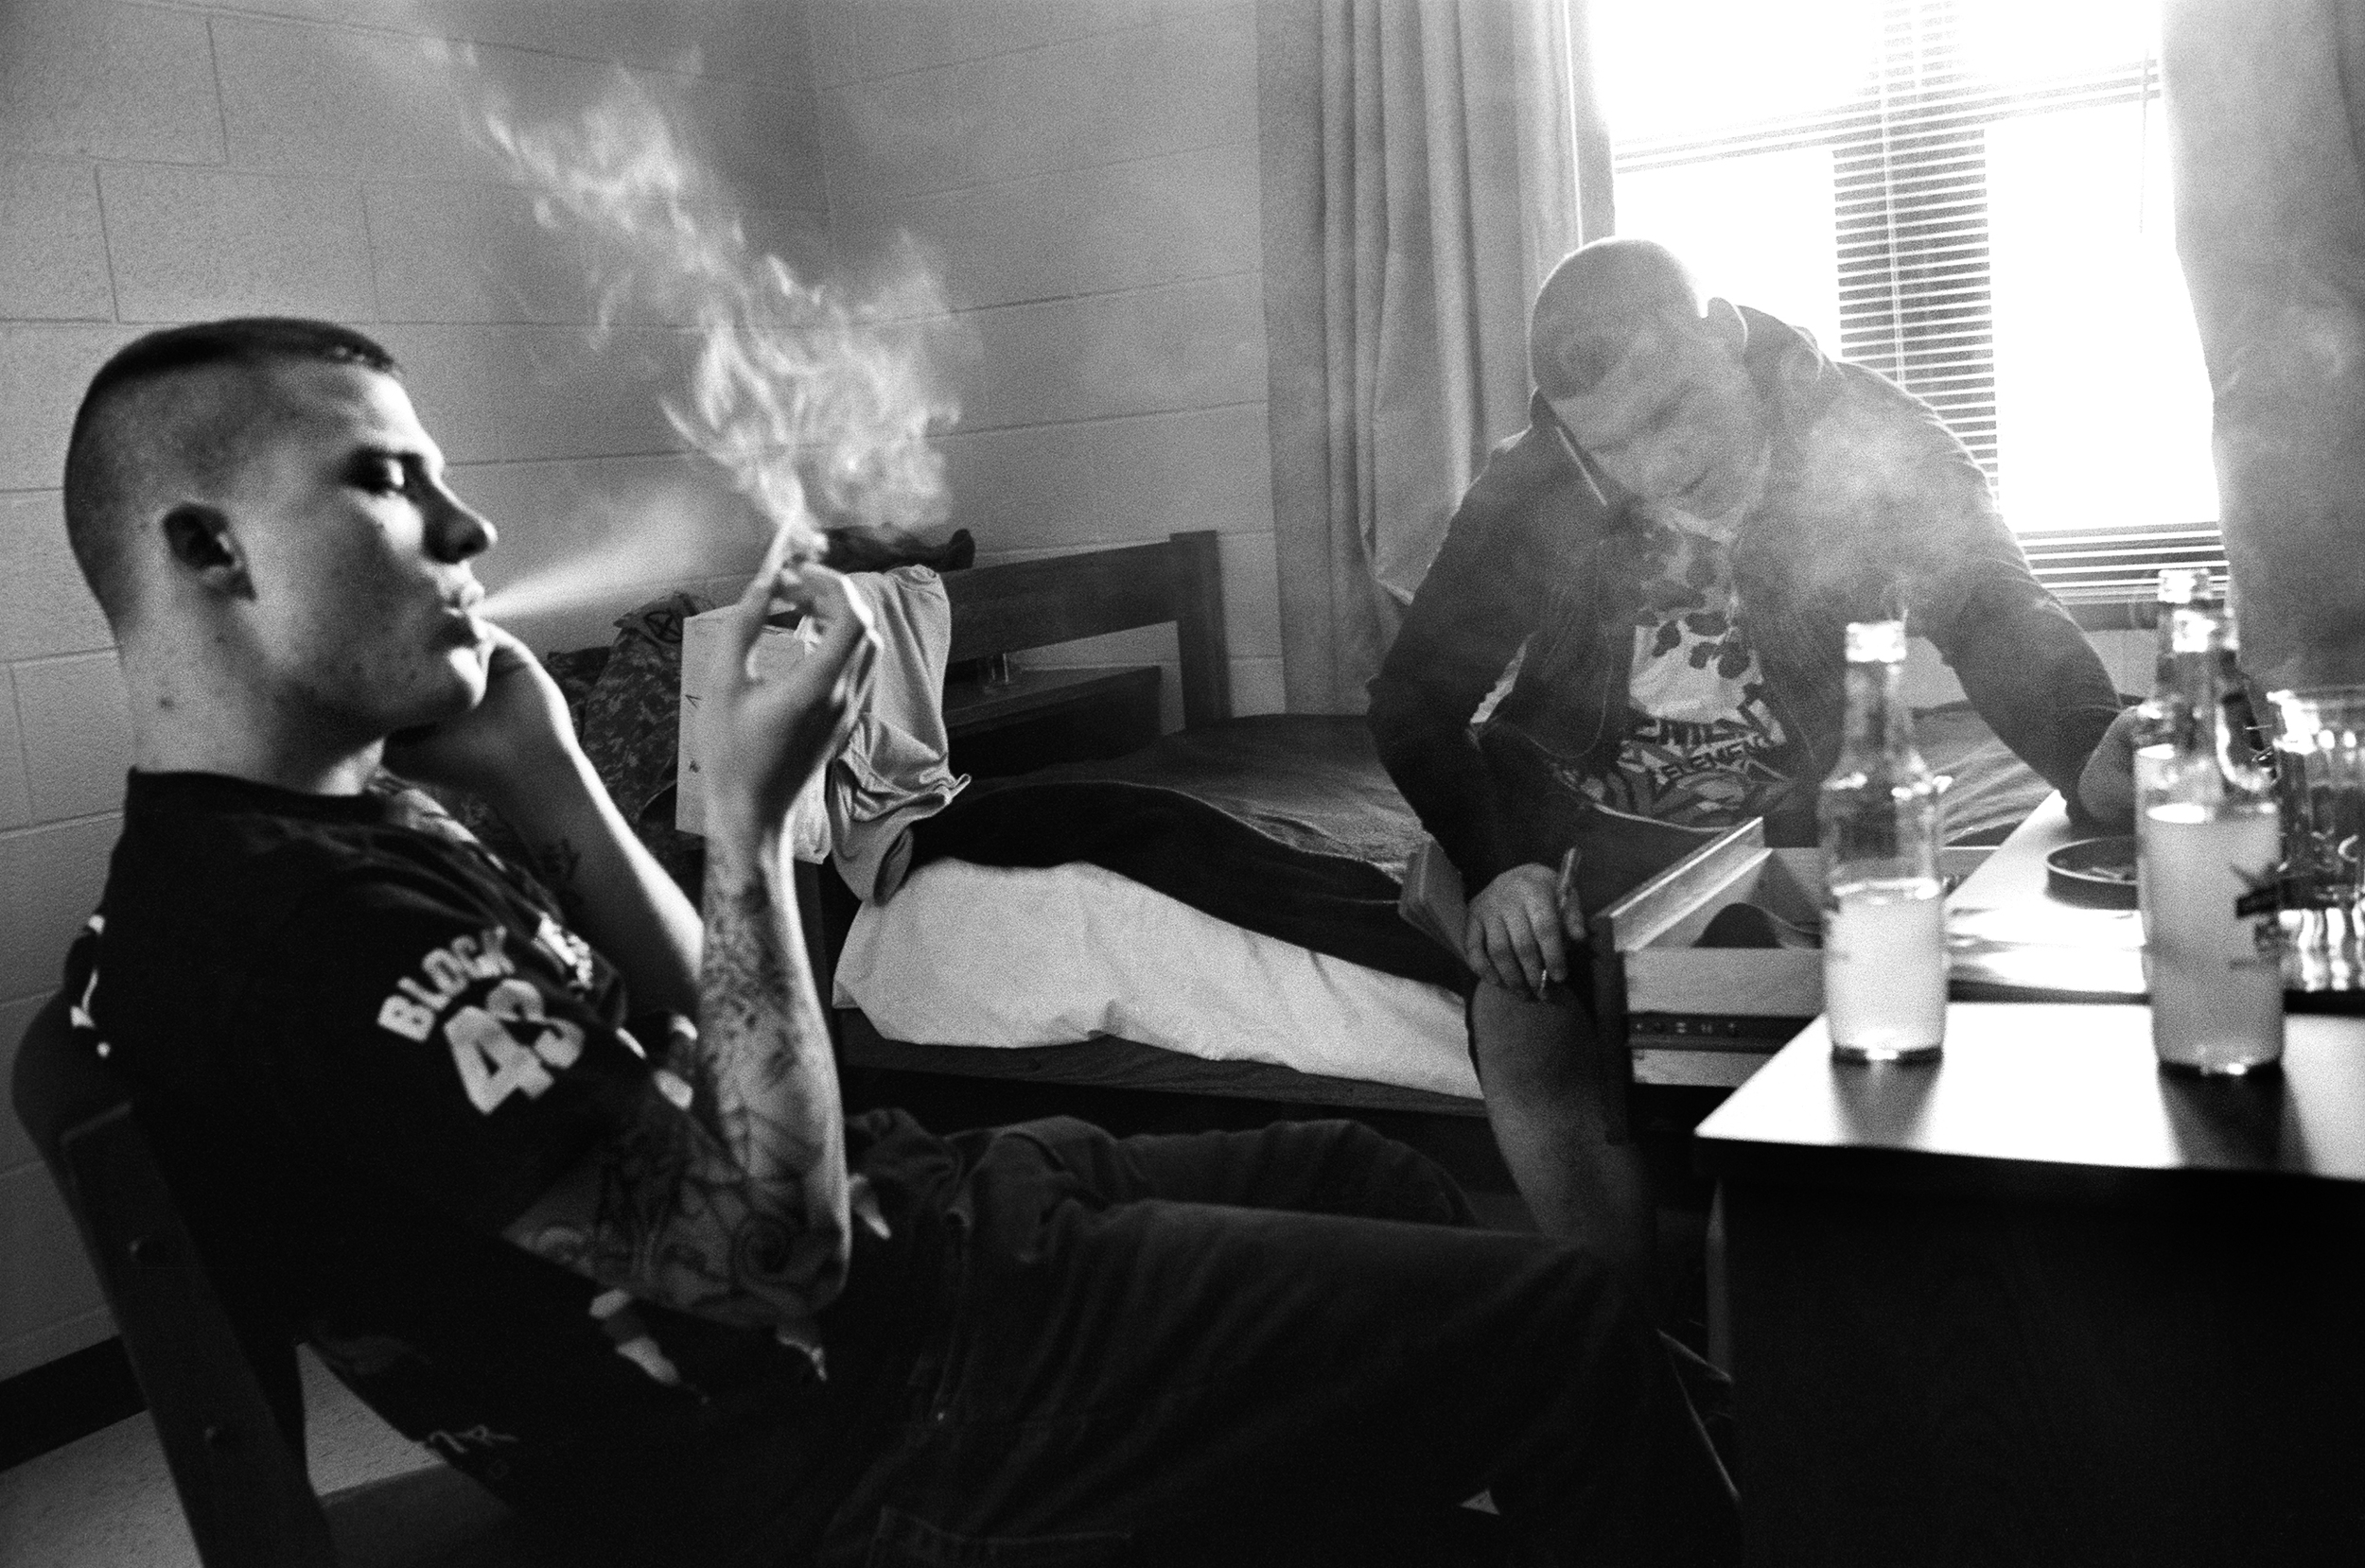 SPC Ryan Cooley and SPC Adam Ramsey smoke cigarettes in the barracks at Fort Drum, New York, 2010.